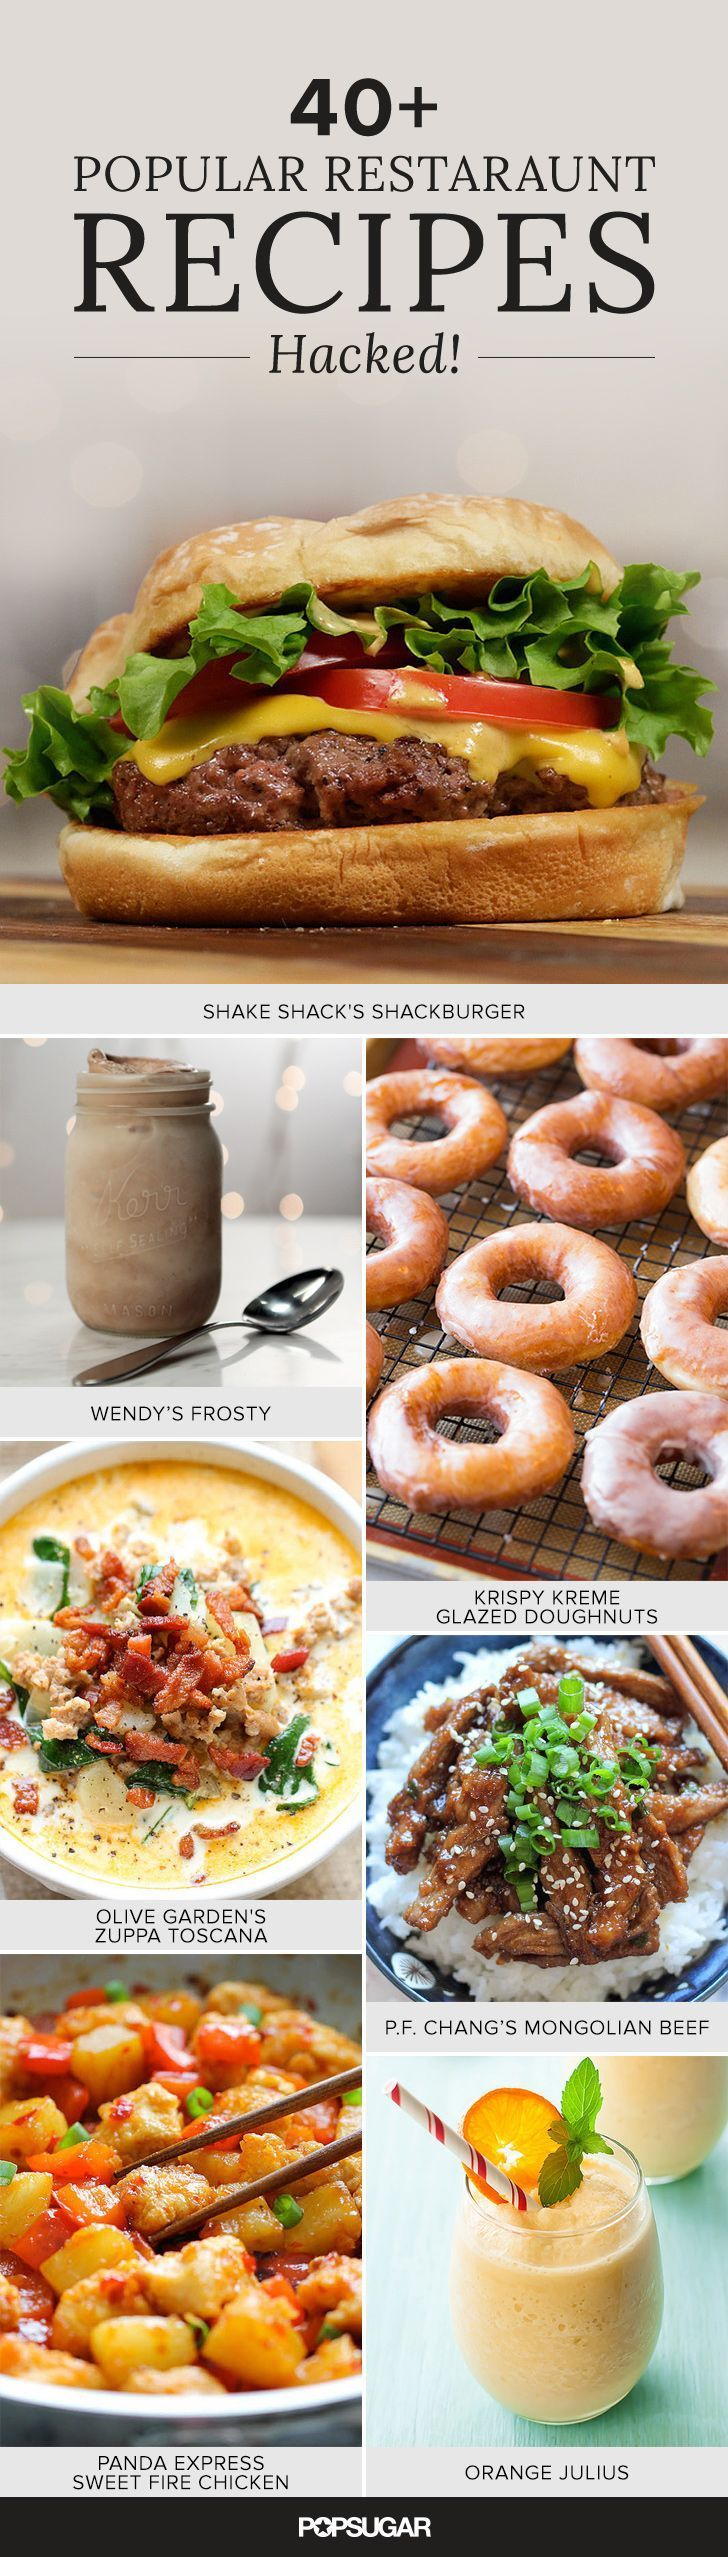 Homemade Krispy Kreme glazed doughnuts, Chick-fil-A nuggets, Starbuck's pumpkin spice scones, Red Lobster cheddar bay biscuits, and more restaurant copycat recipes.